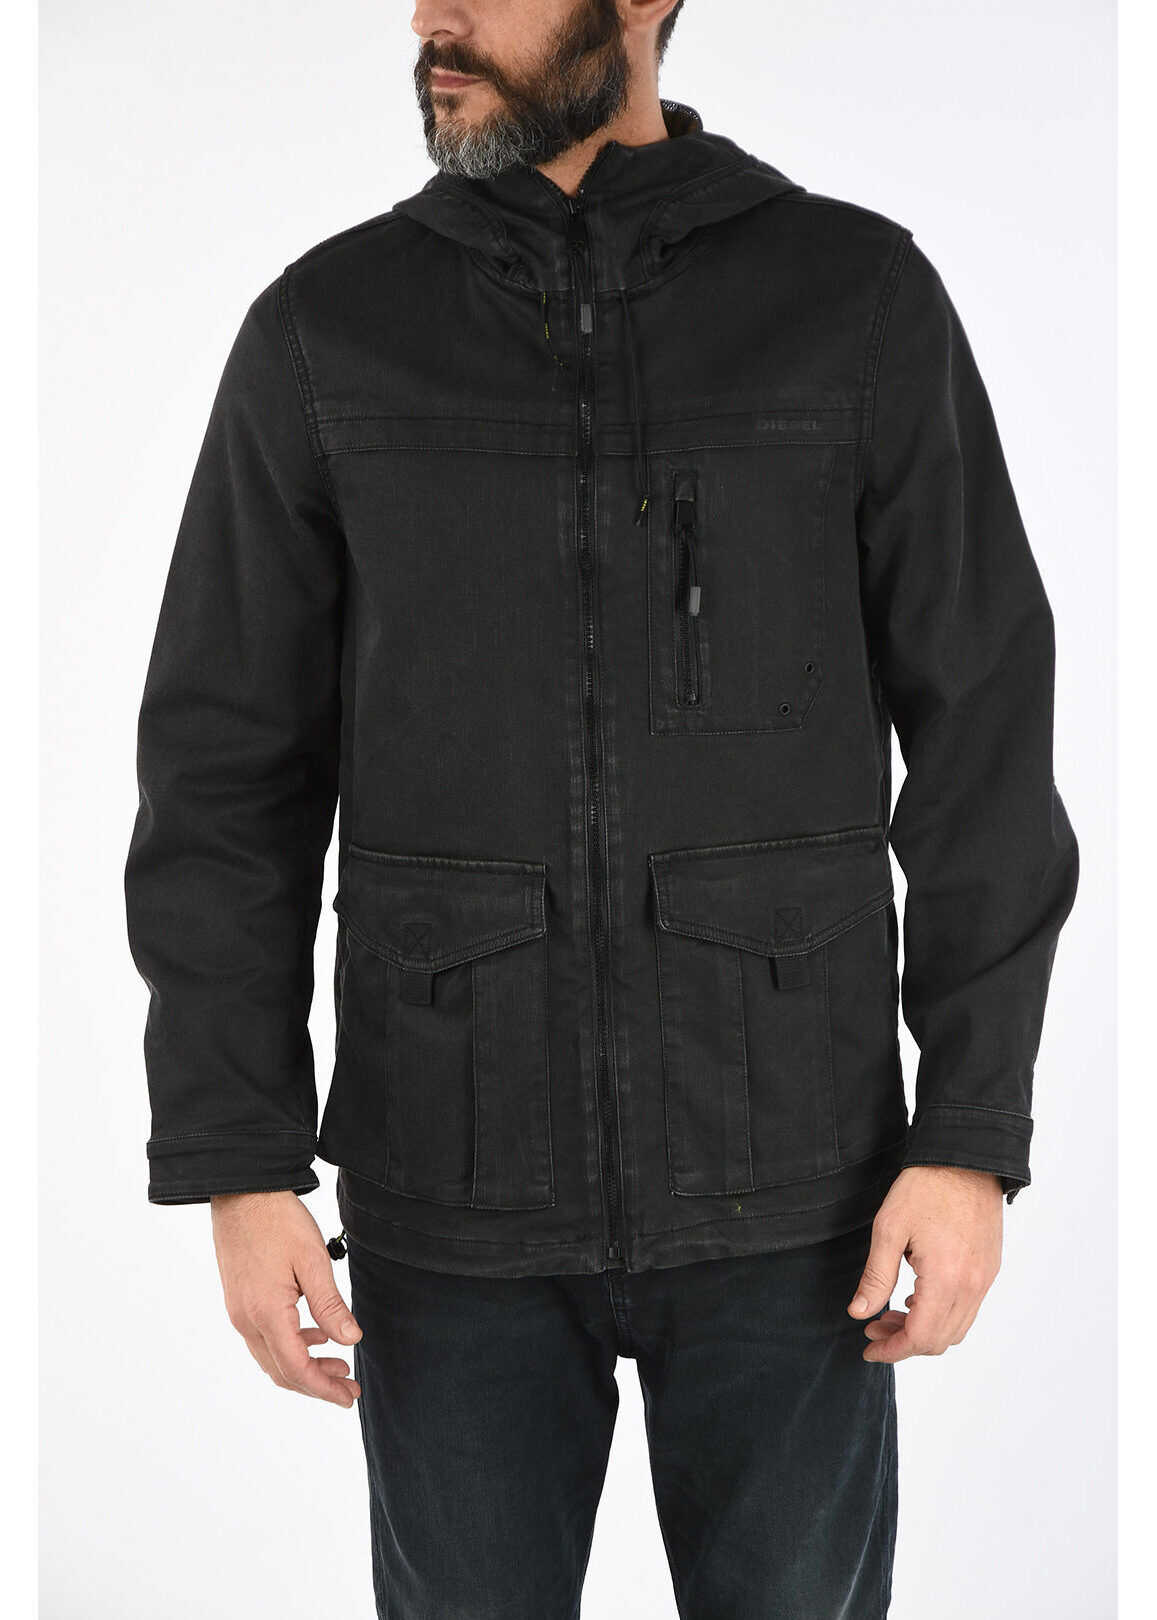 Diesel Hooded JOQUE-NE Denim Jacket BLACK imagine